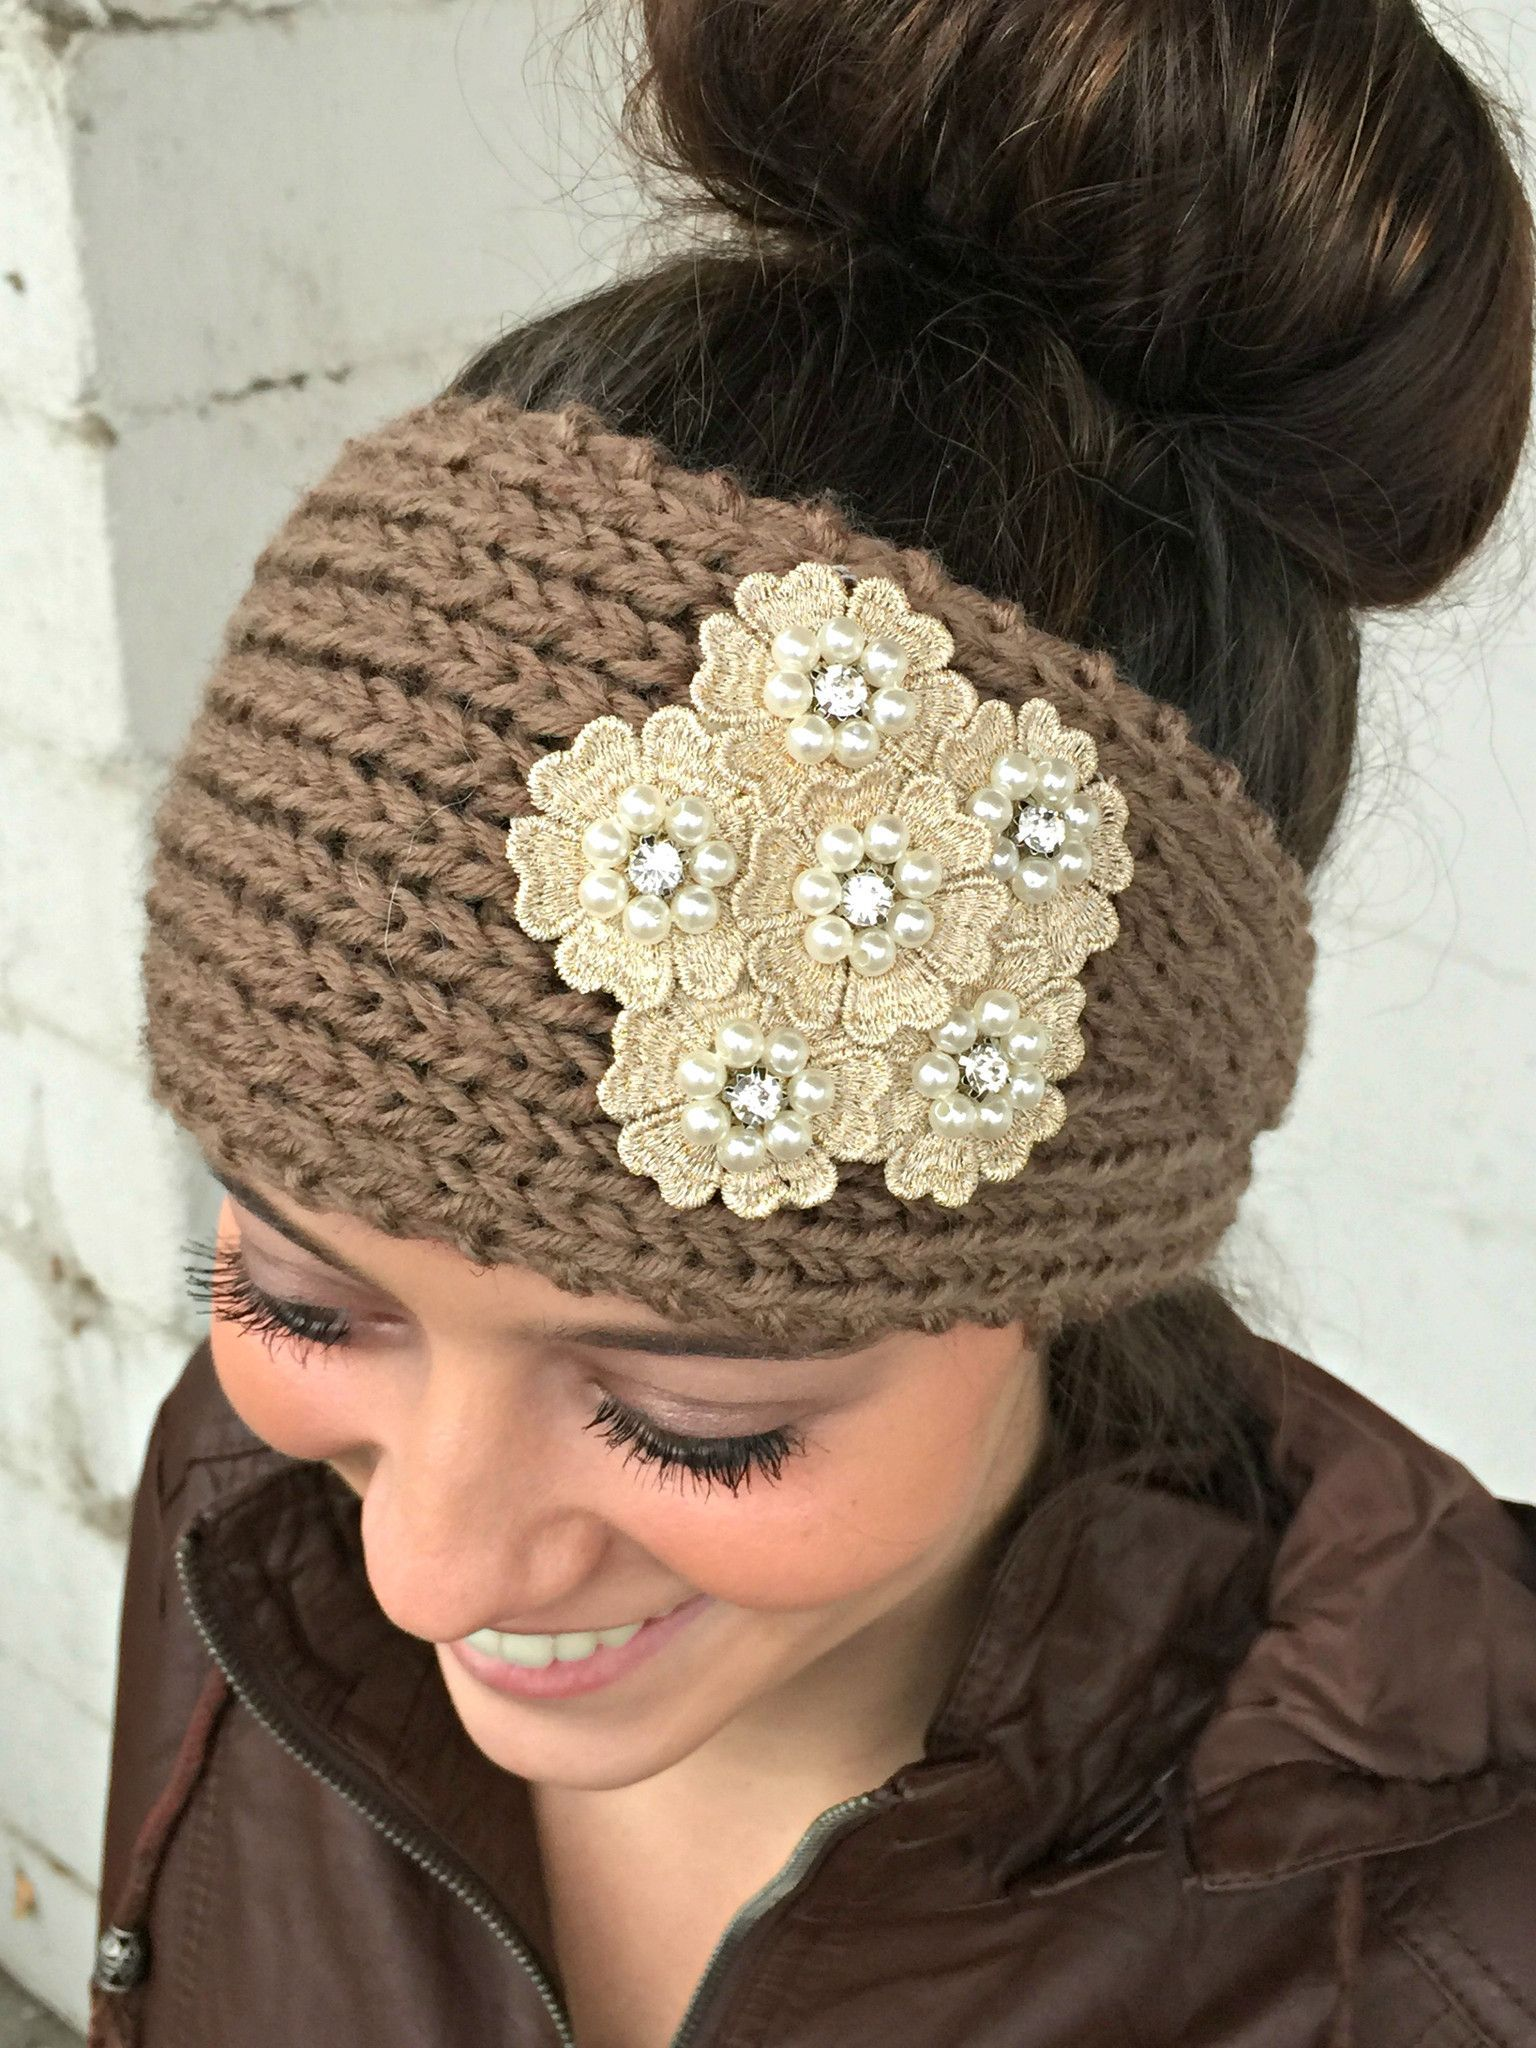 Knit Headband/Earwarmer | Fashion | Pinterest | Knitted headband ...